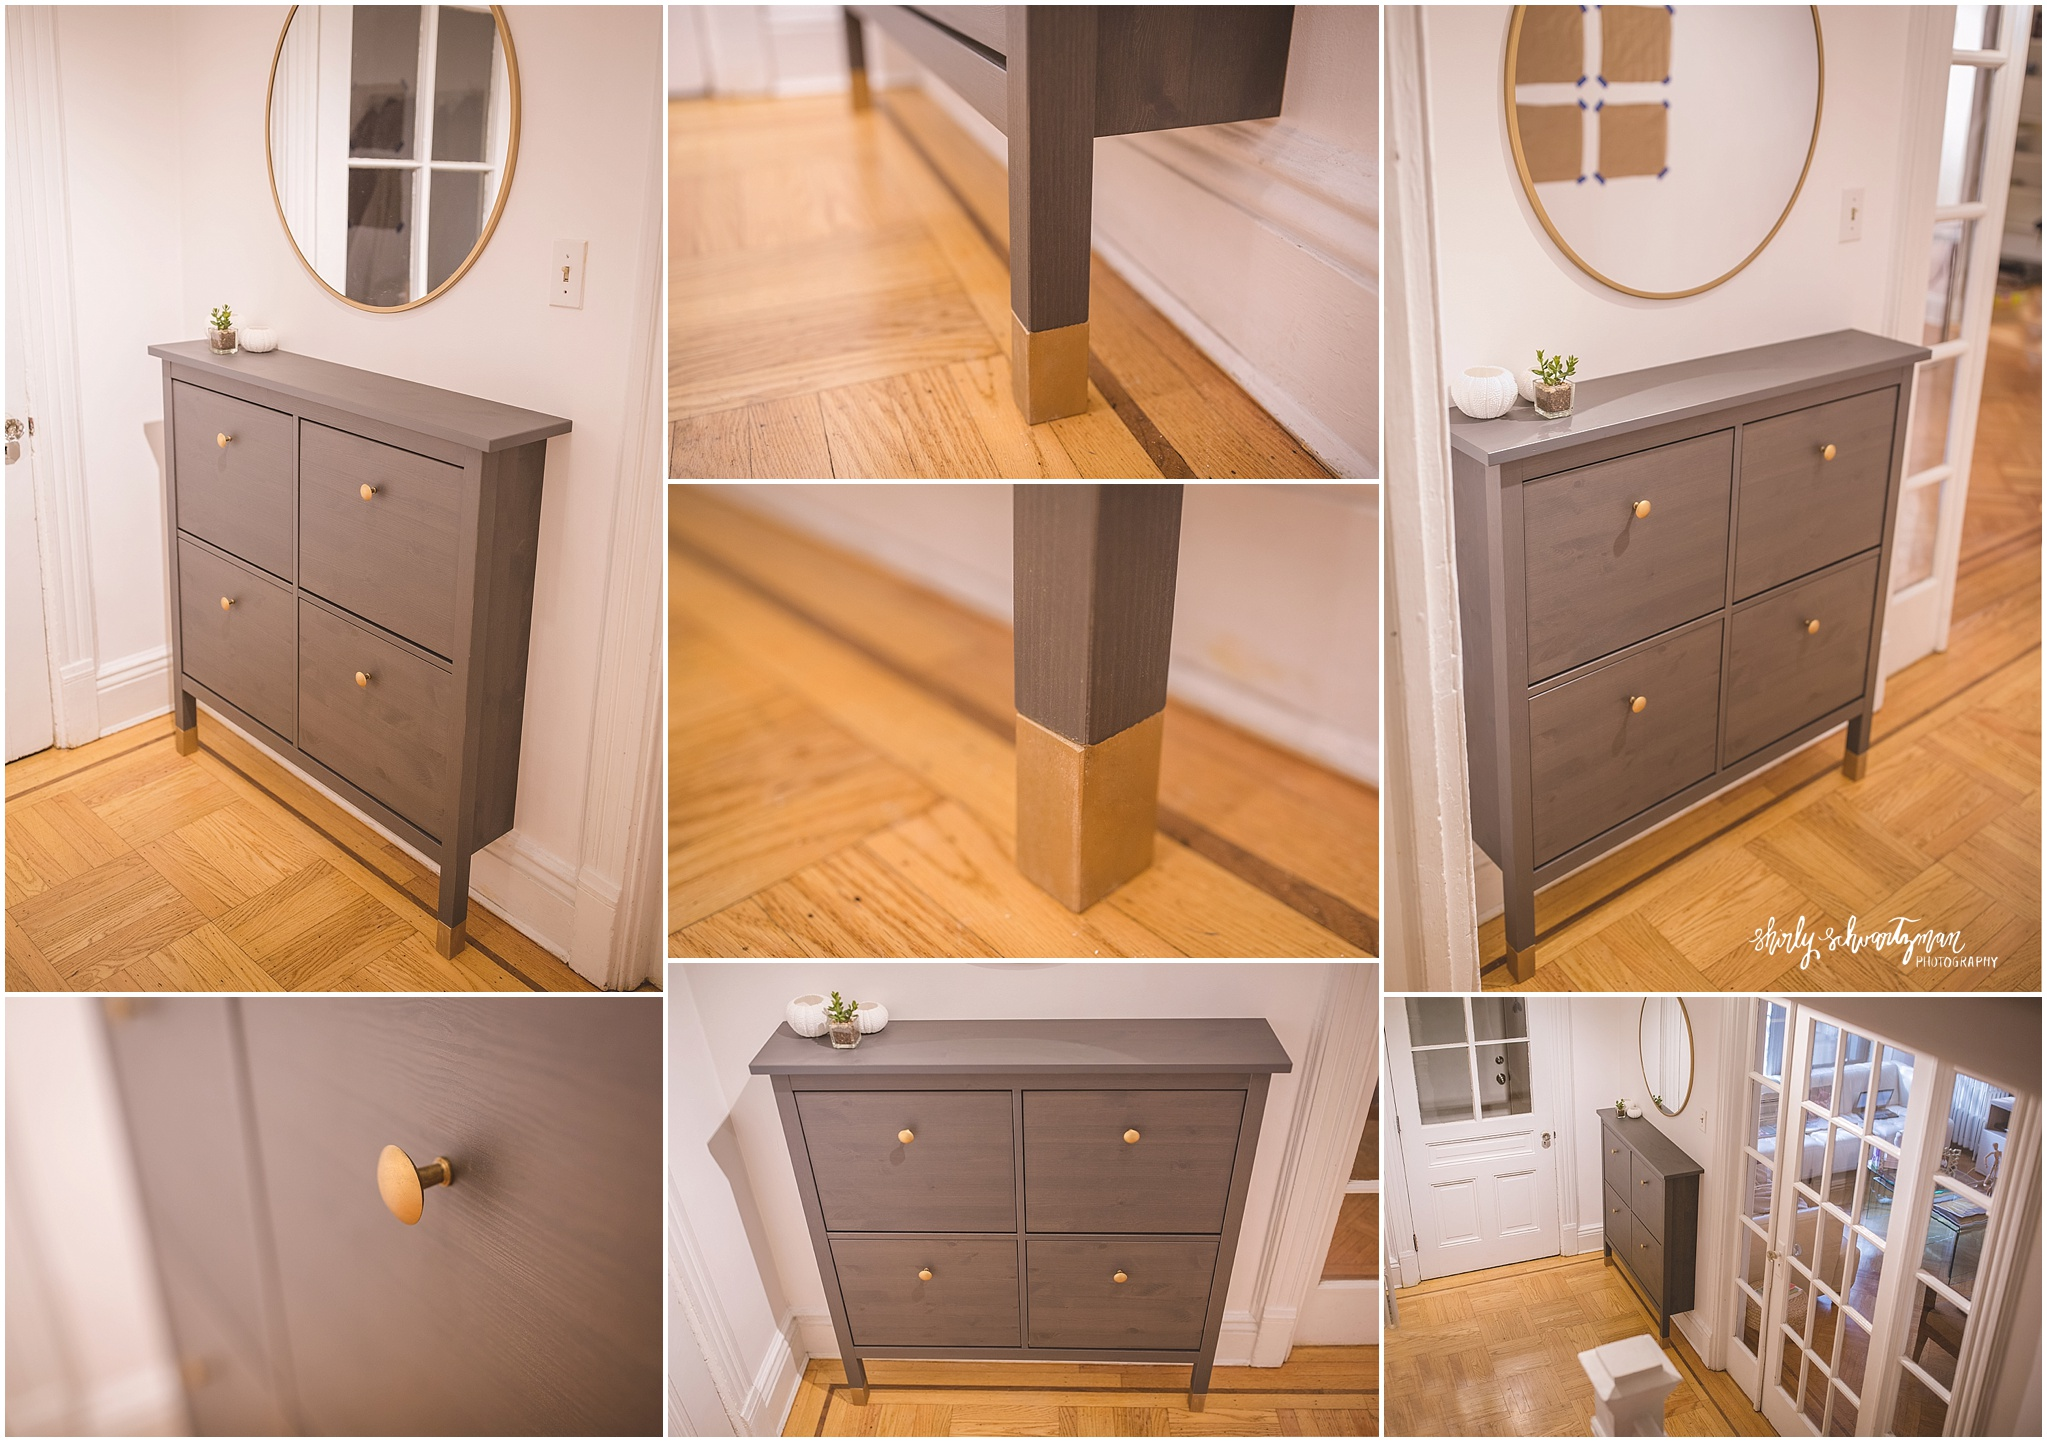 Ikea Hack Hemnes Shoe Cabinet Storage For Tall Baseboards.